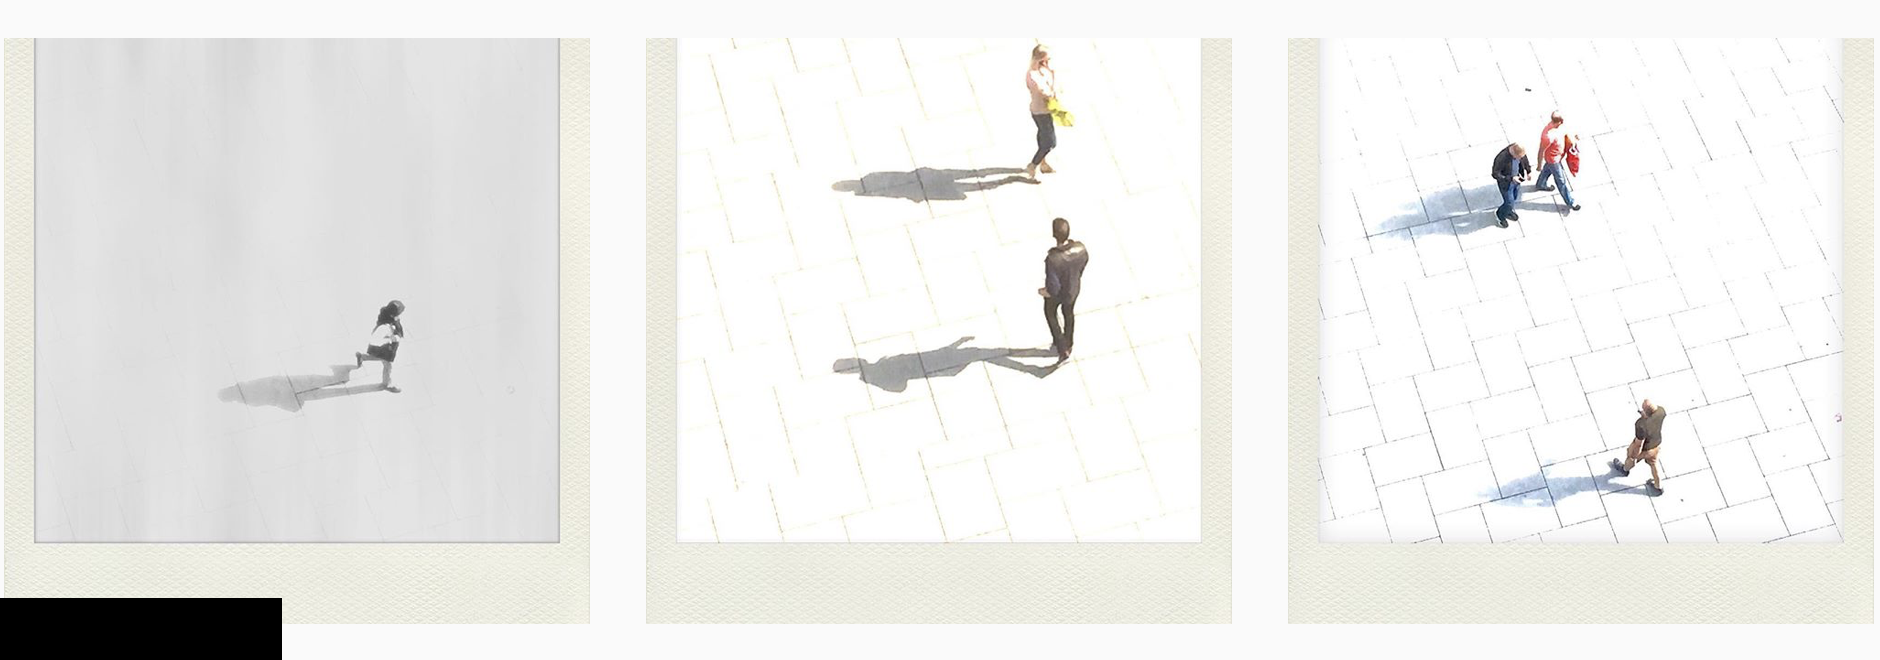 people in cities - minimalized activities